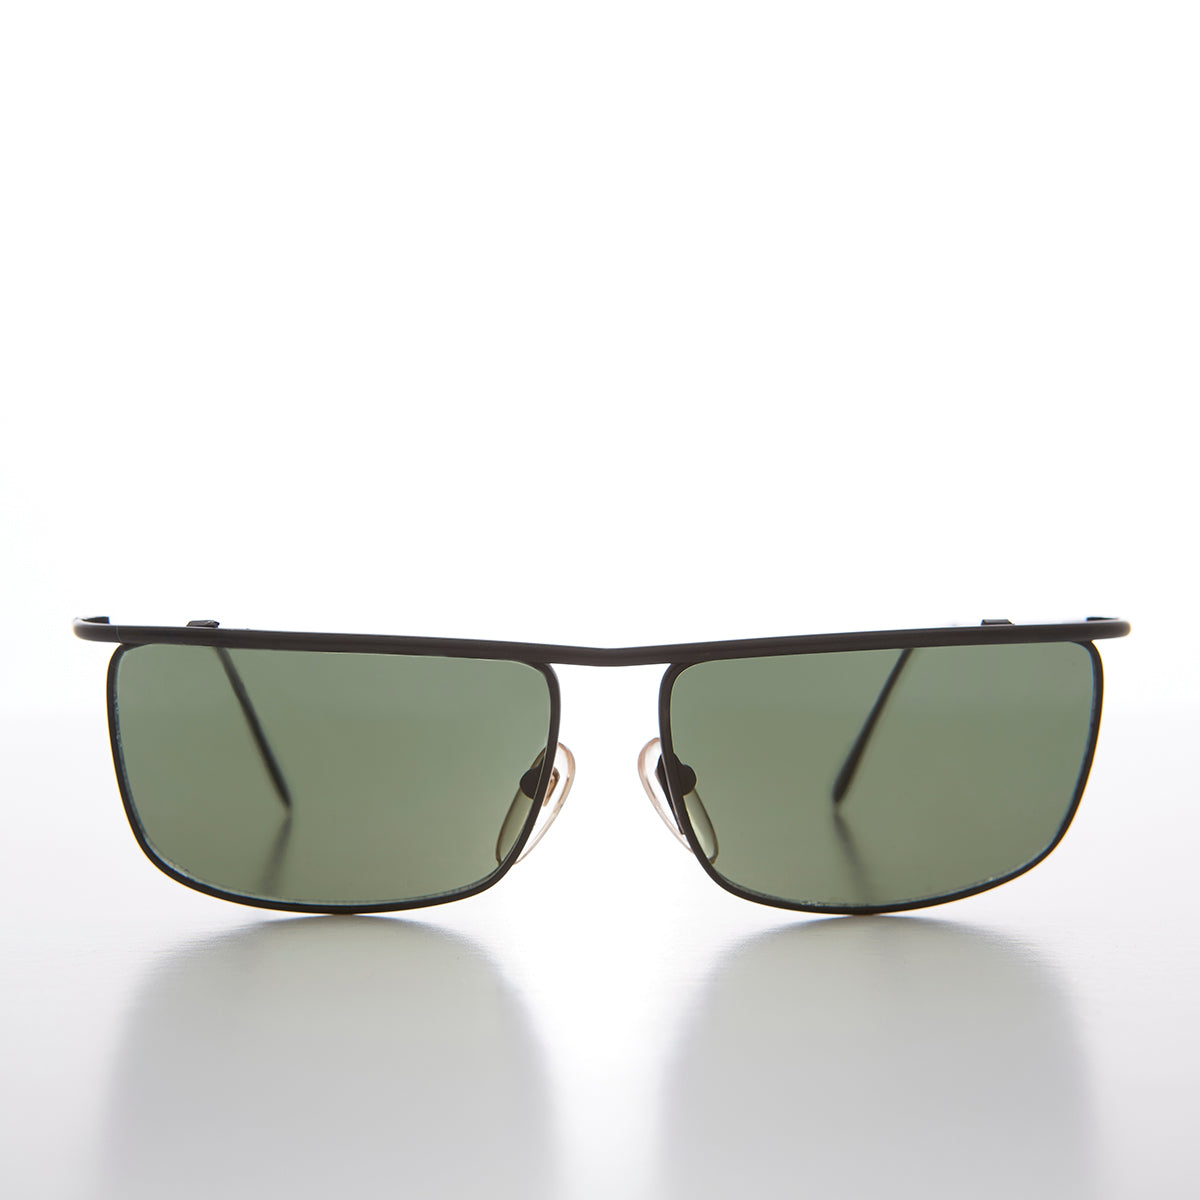 Unique Metal Street Style Men's Rectangular Vintage Sunglass